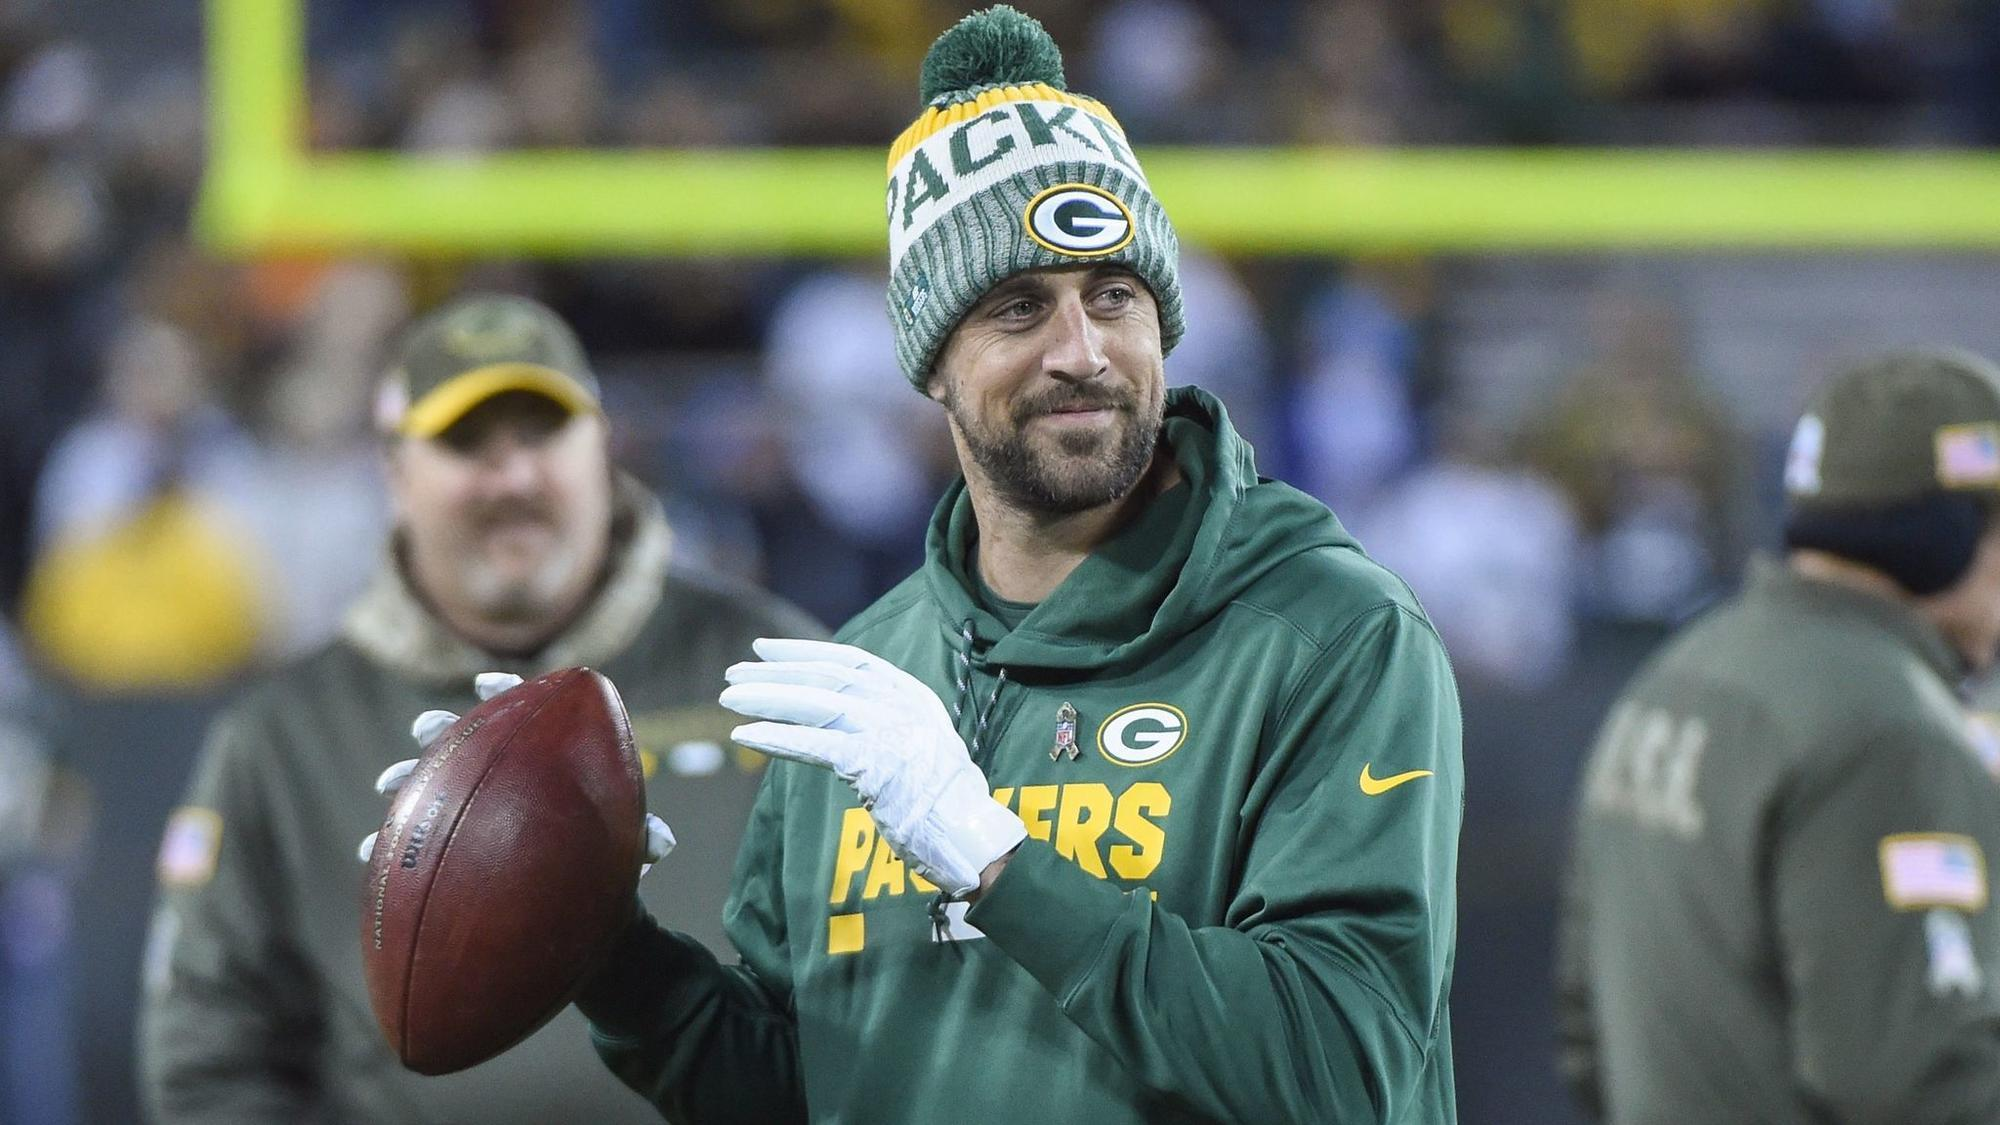 We don t need X ray to know Aaron Rodgers clavicle looks better